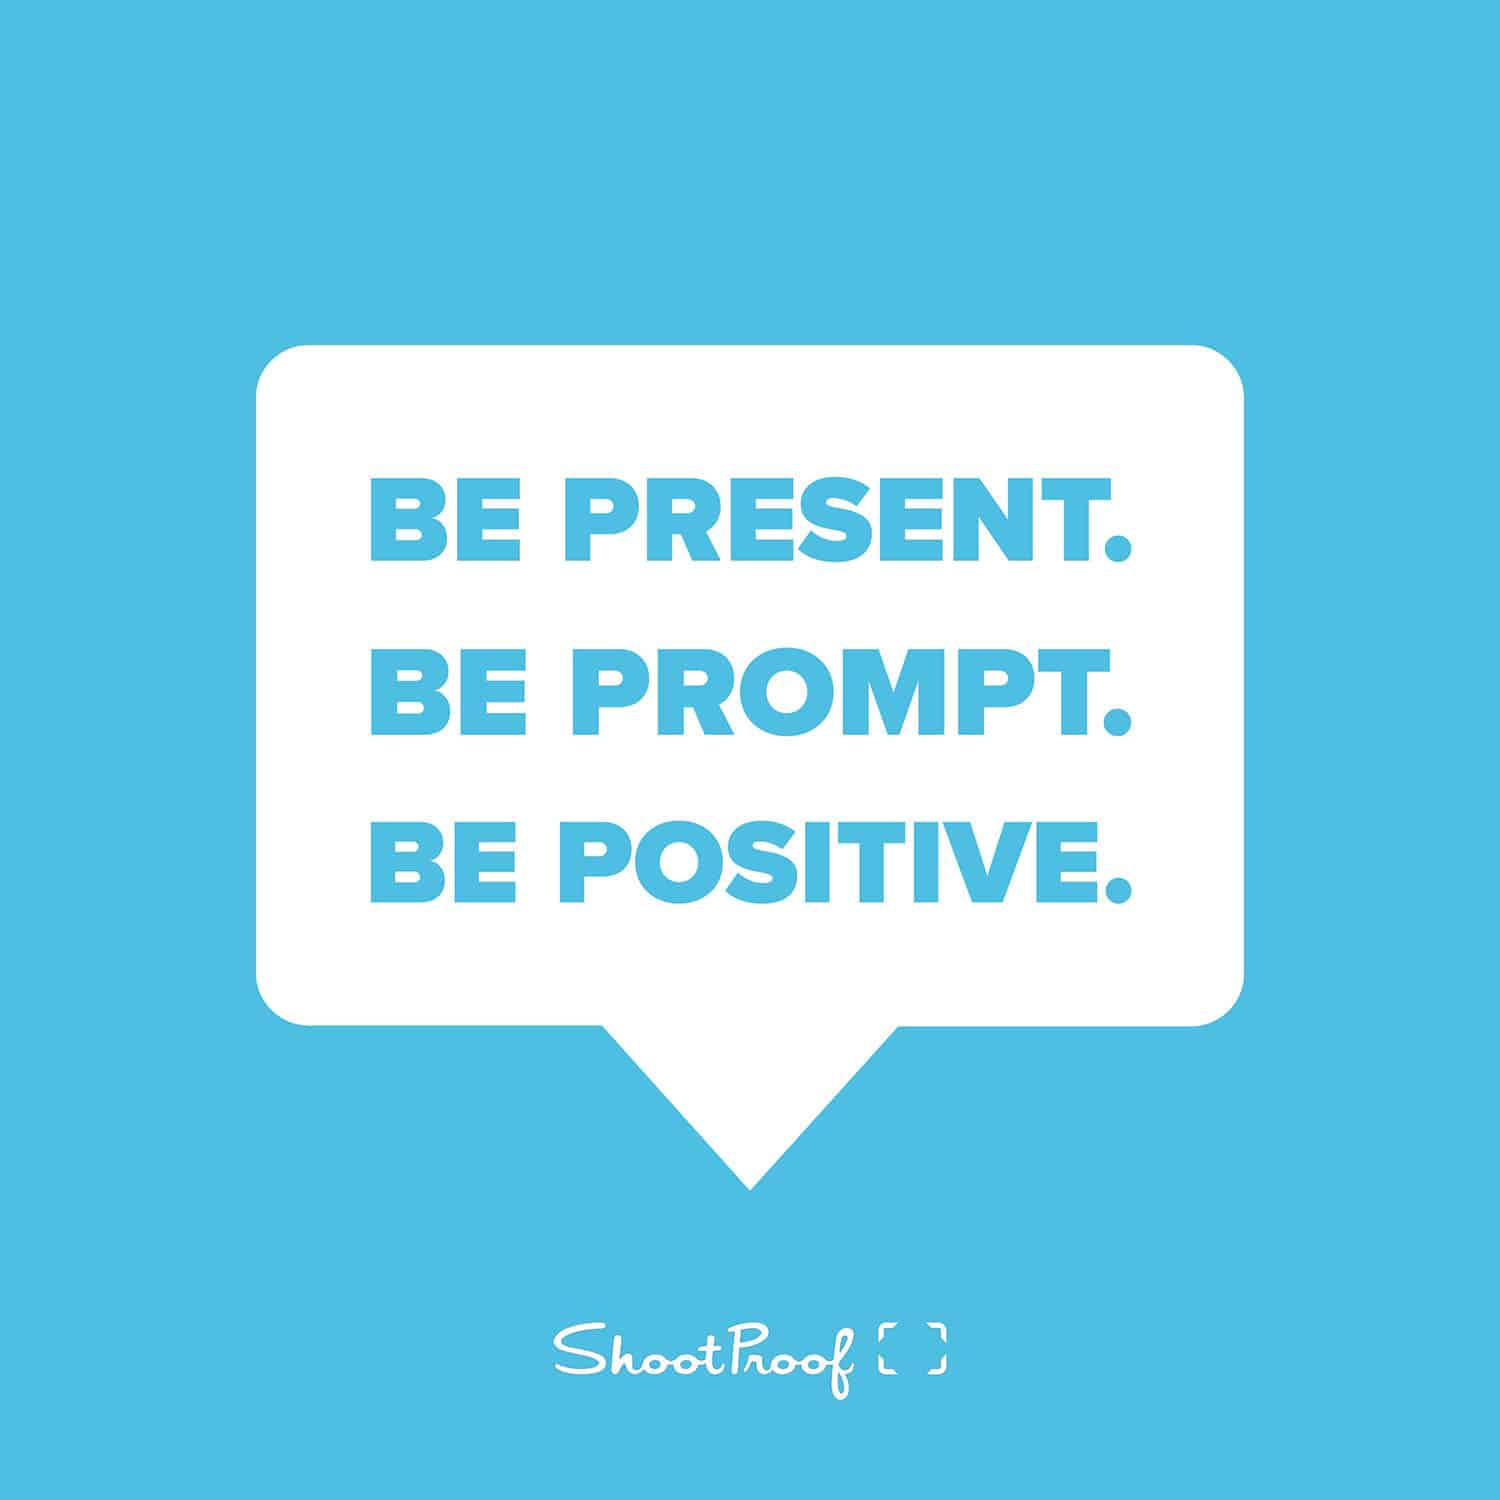 Photography Tips: Be Present. Be Prompt. Be Positive.